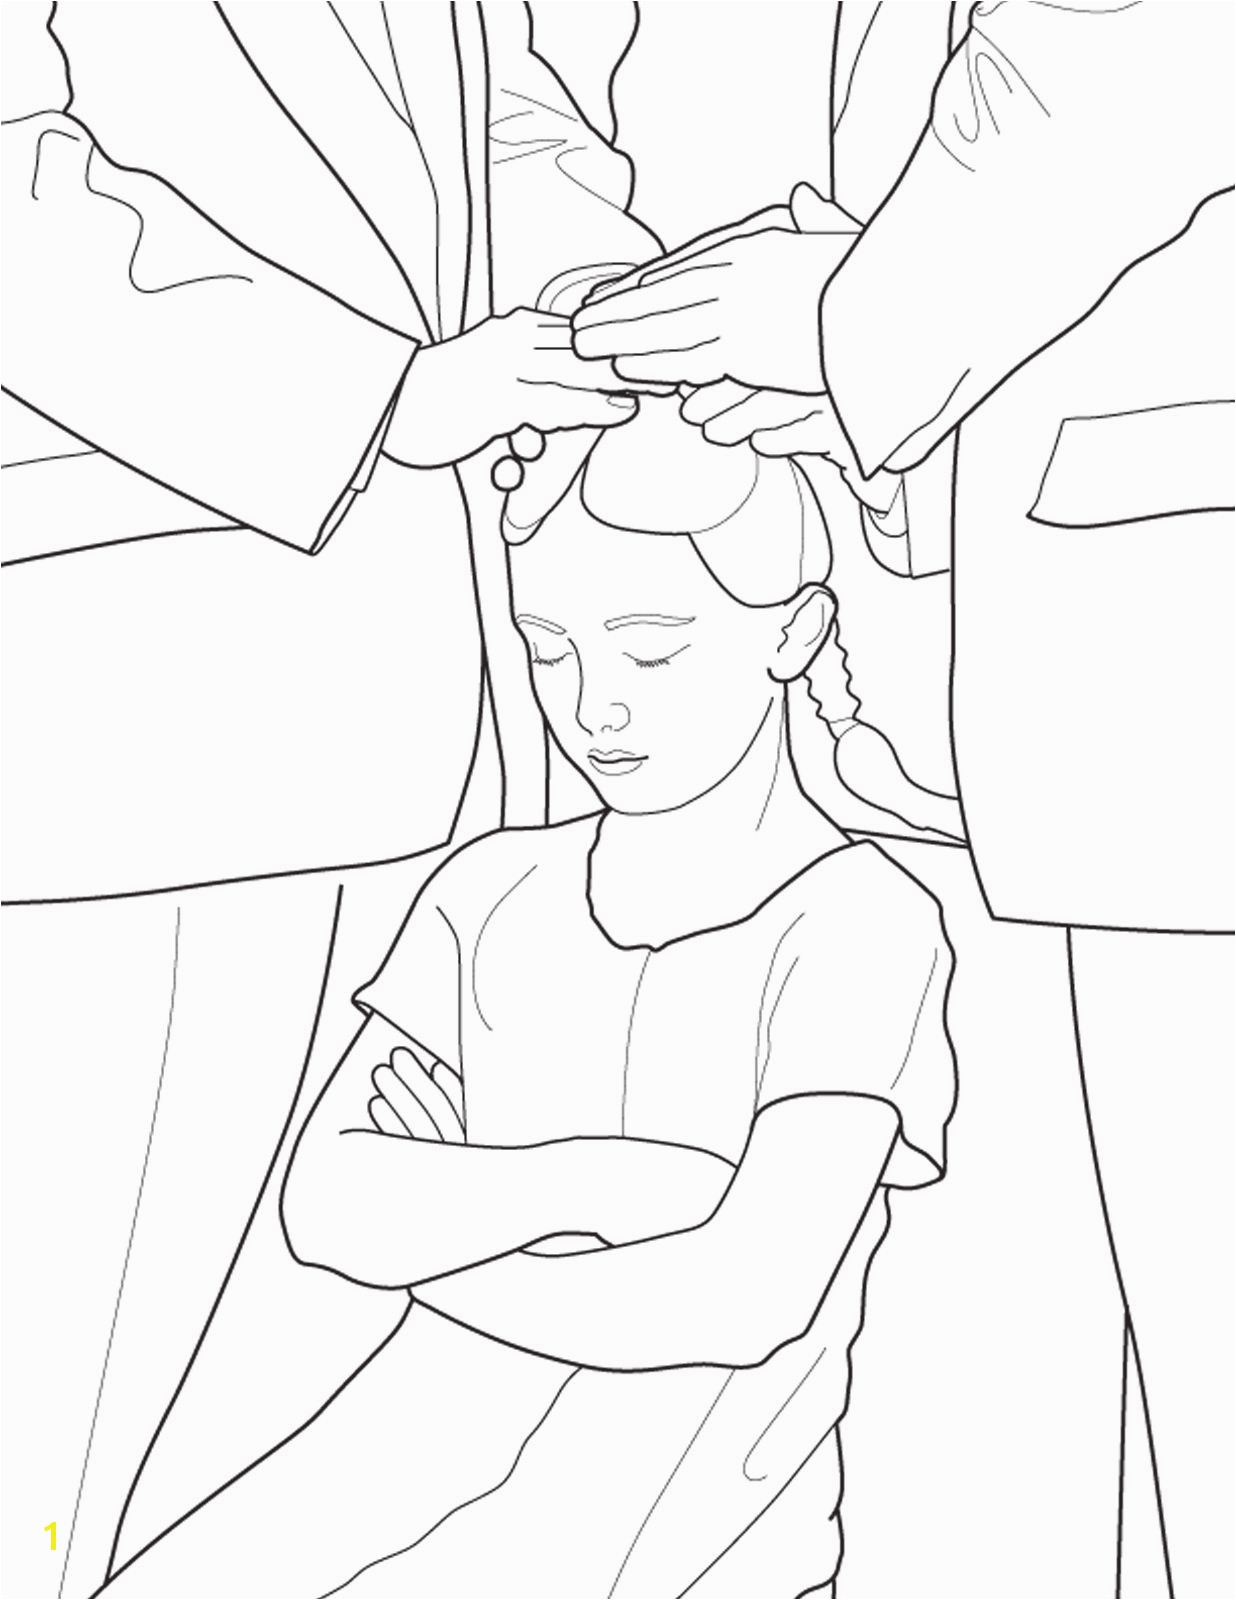 A Primary coloring page from the LDS Church A girl is confirmed following baptism More coloring pages are here